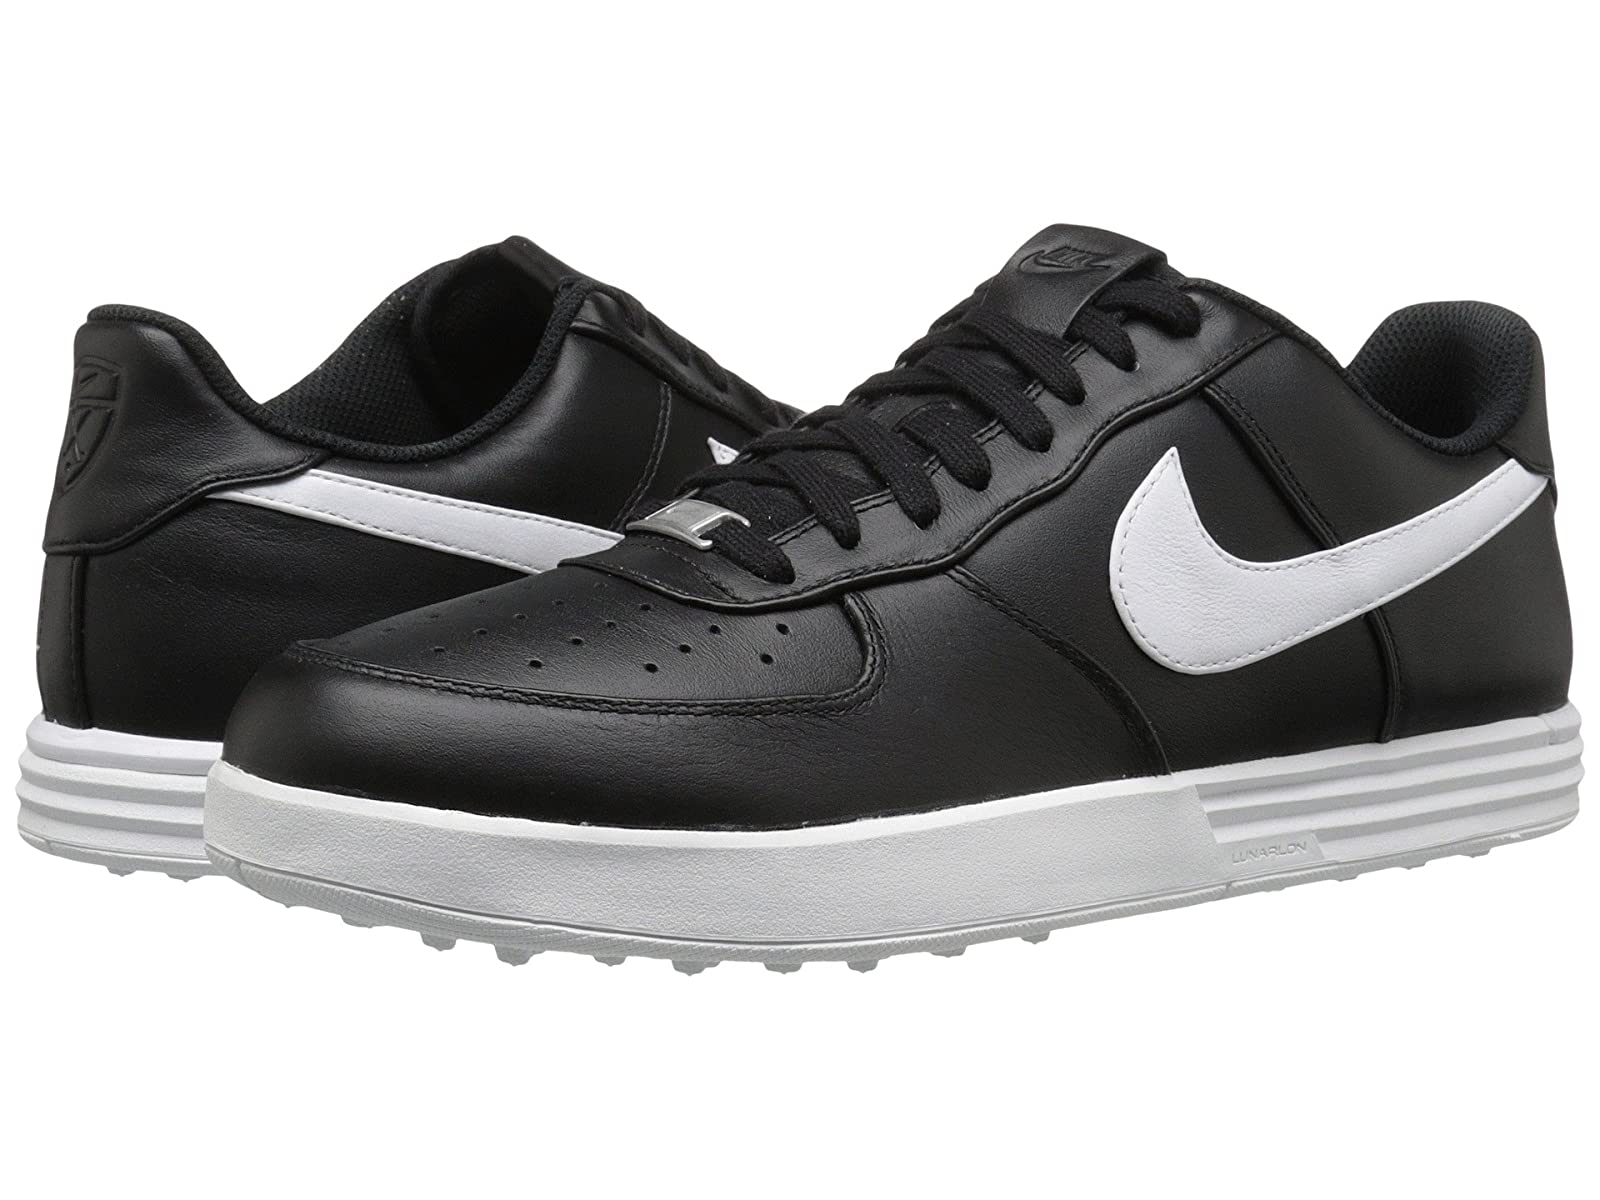 Nike Golf Lunar Force 1Cheap and distinctive eye-catching shoes